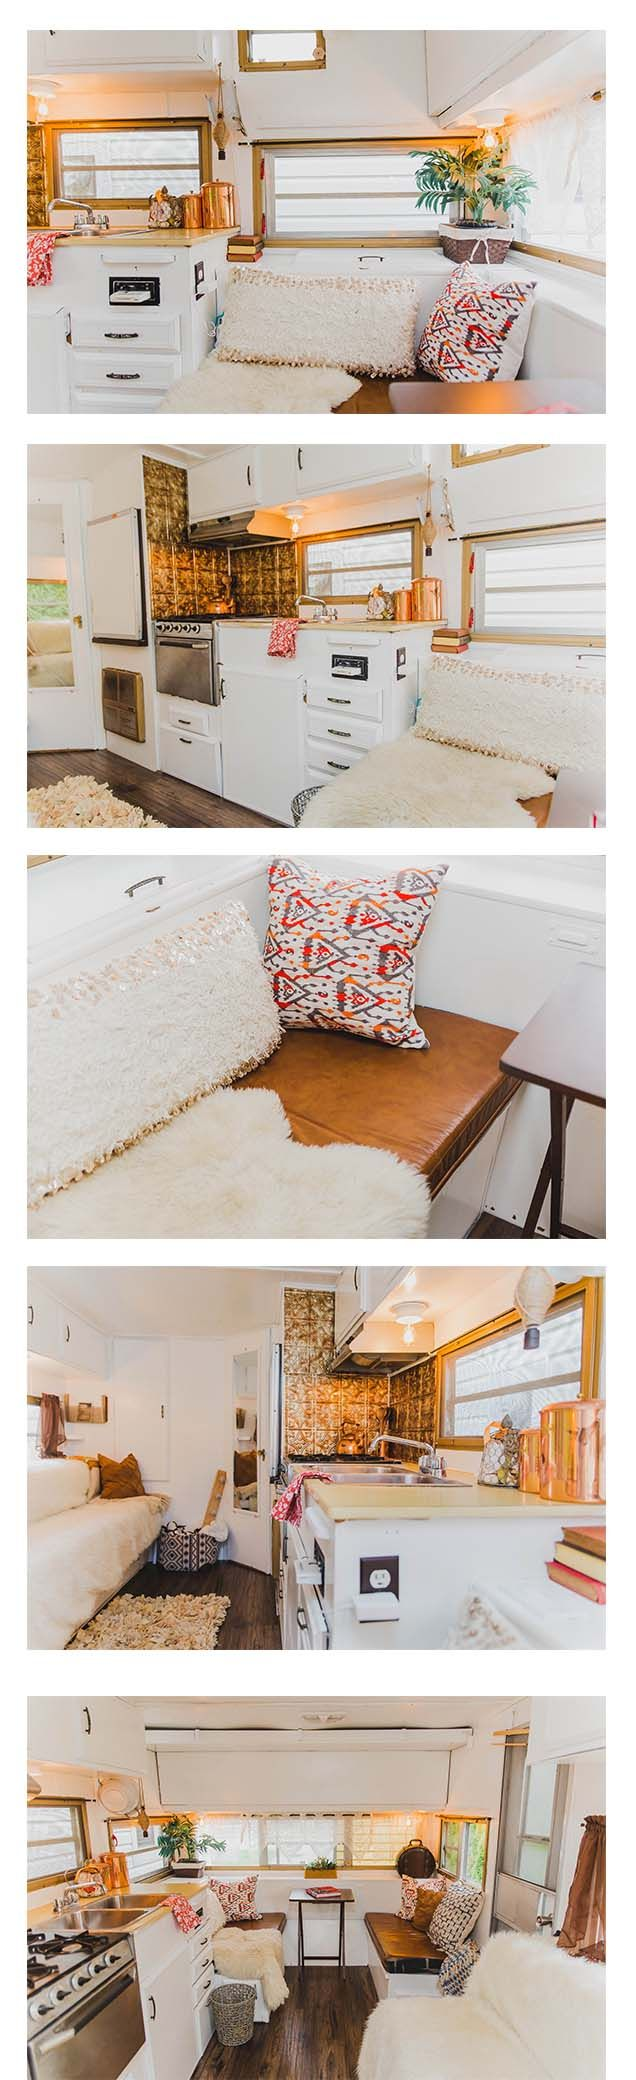 Our boho vintage travel trailer reno!! http://www.riversidephotography.ca/#!blogger-feed/c1y79/search/trailer